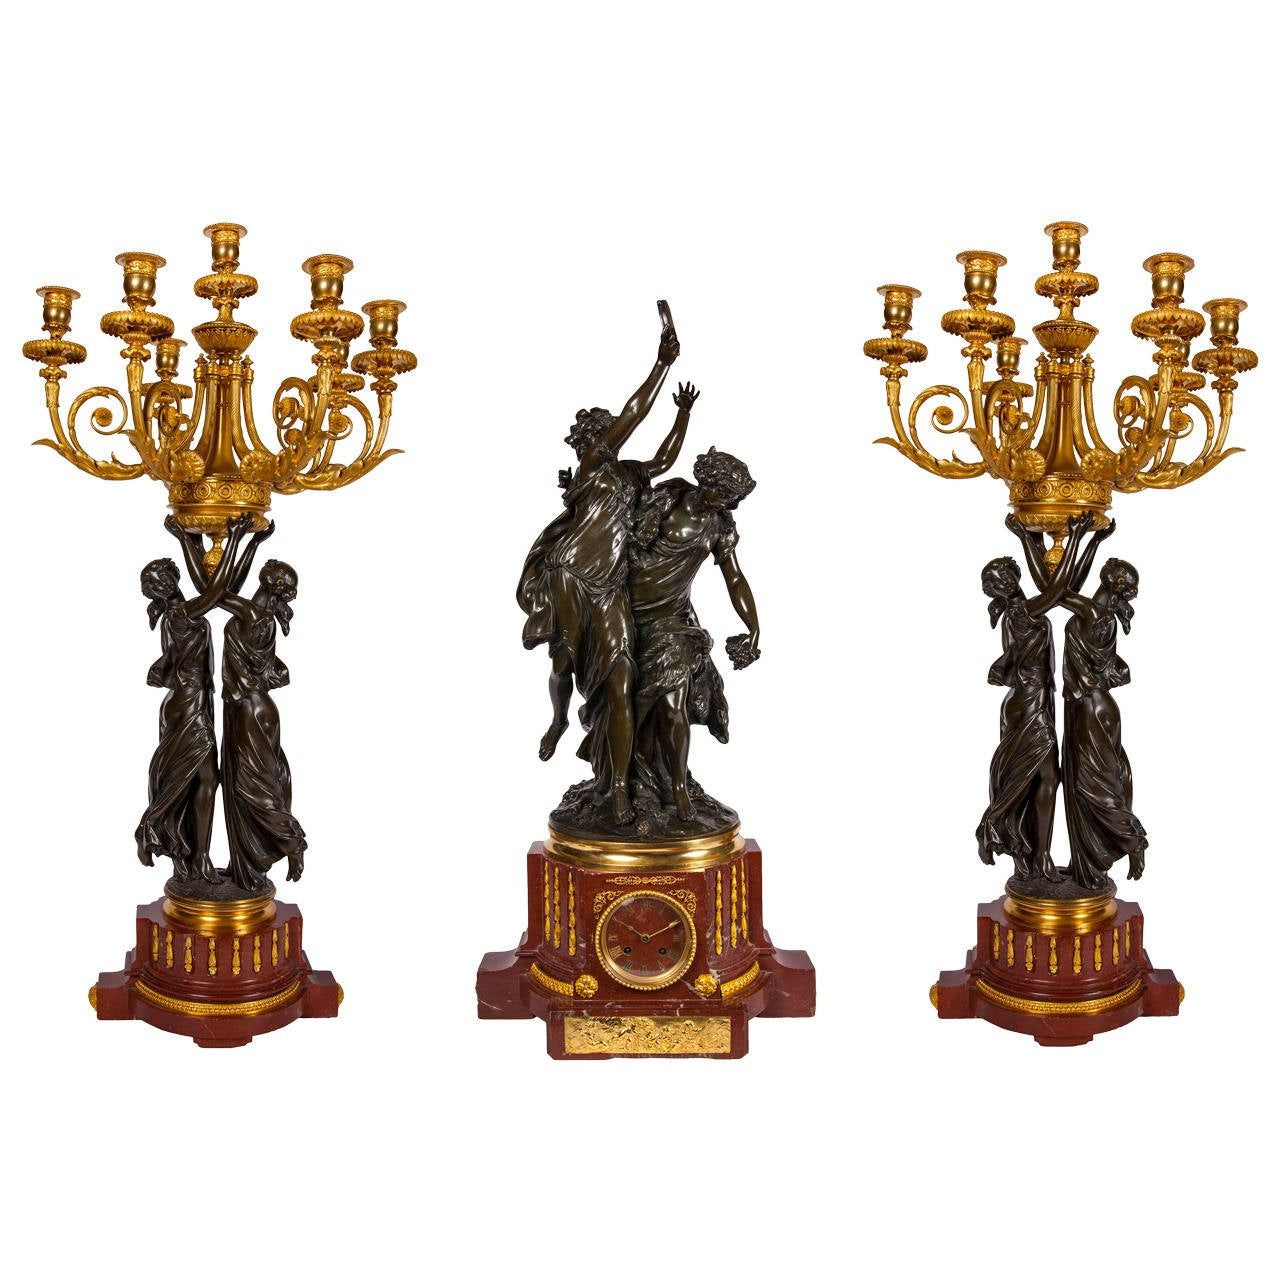 Large Sculptural Gilt and Patinated Bronze Clock Set by Jules Graux For Sale